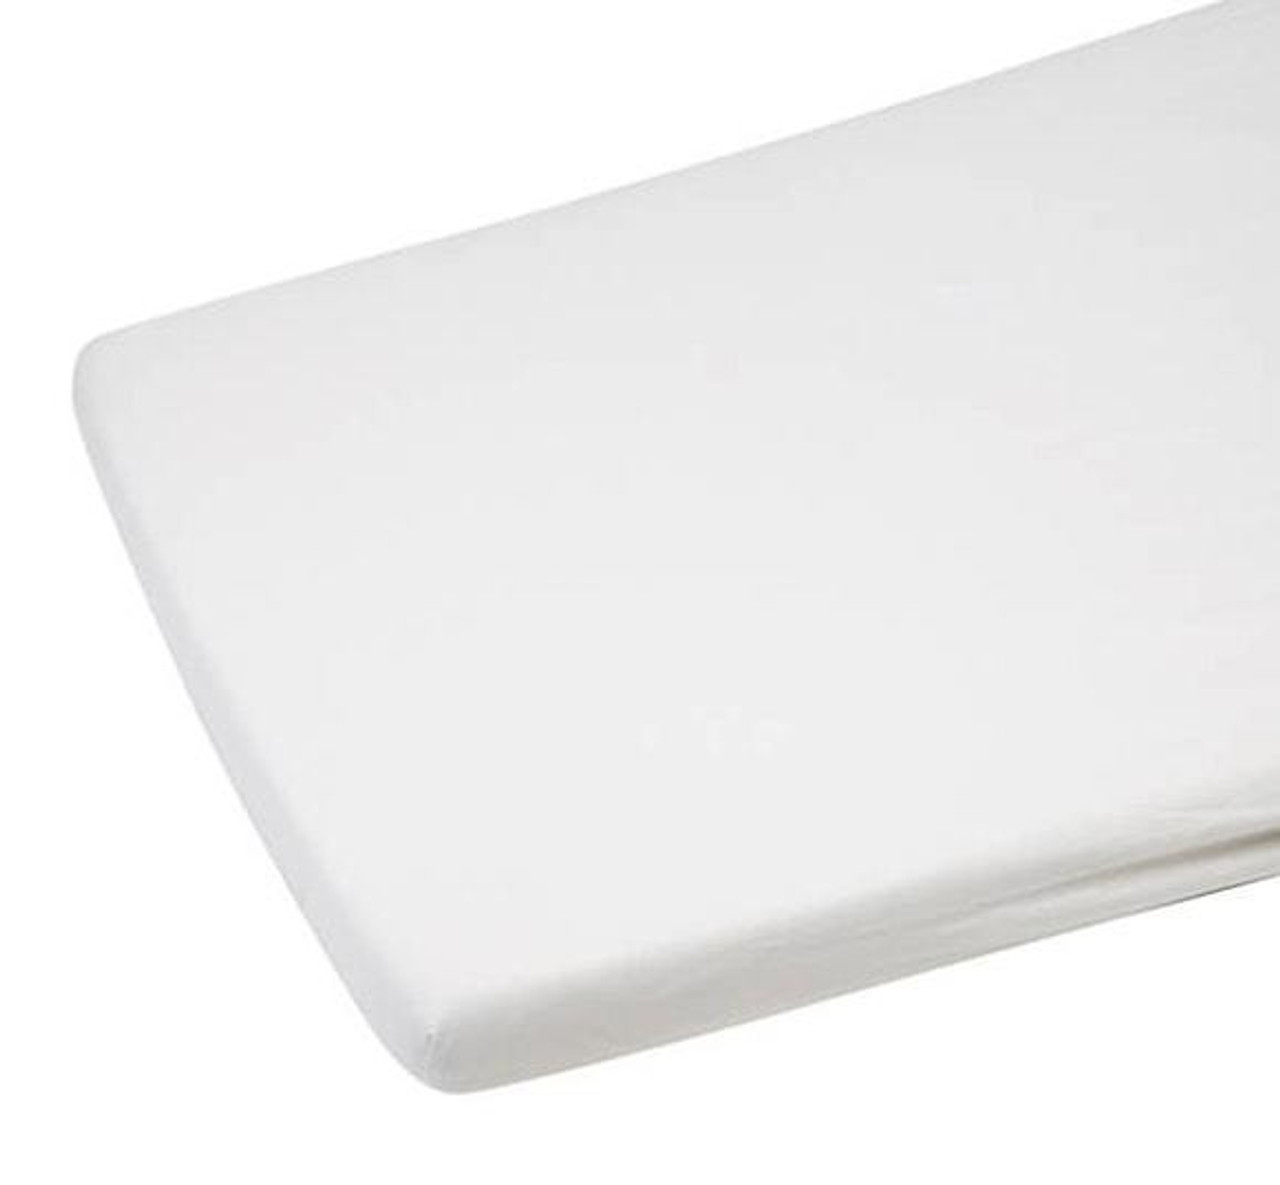 Heavenly Dreams Cotton Polyester Mattress Cradle at Baby Barn Discounts A comfortable and firm fibre cradle mattress for your baby from Heavenly Dreams.